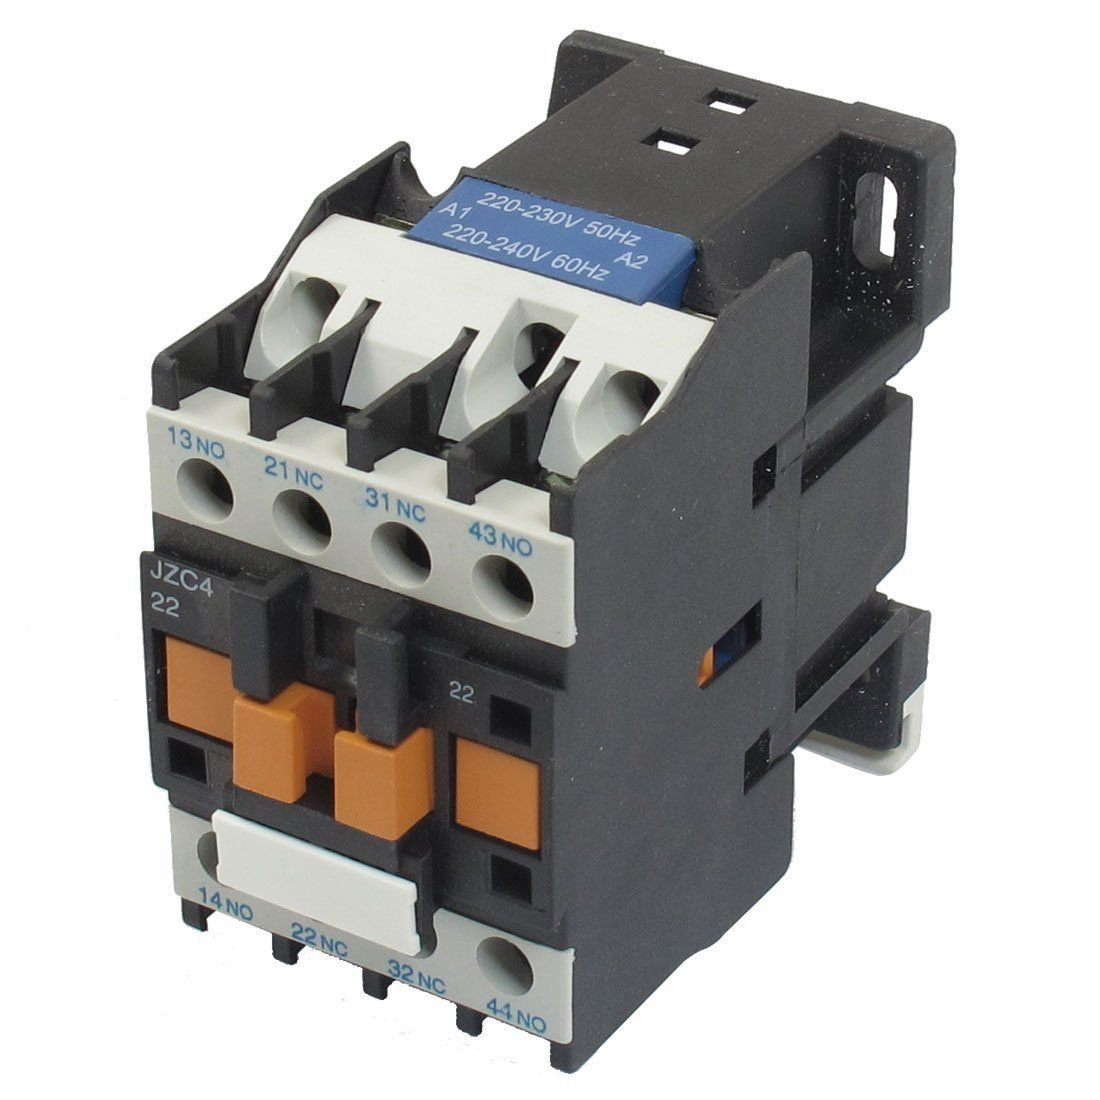 jzc4-22 220-240v 50/60hz coil 20a 2p three pole 2no 2nc ac contactor    electrical projects, power engineering, home electrical wiring  pinterest